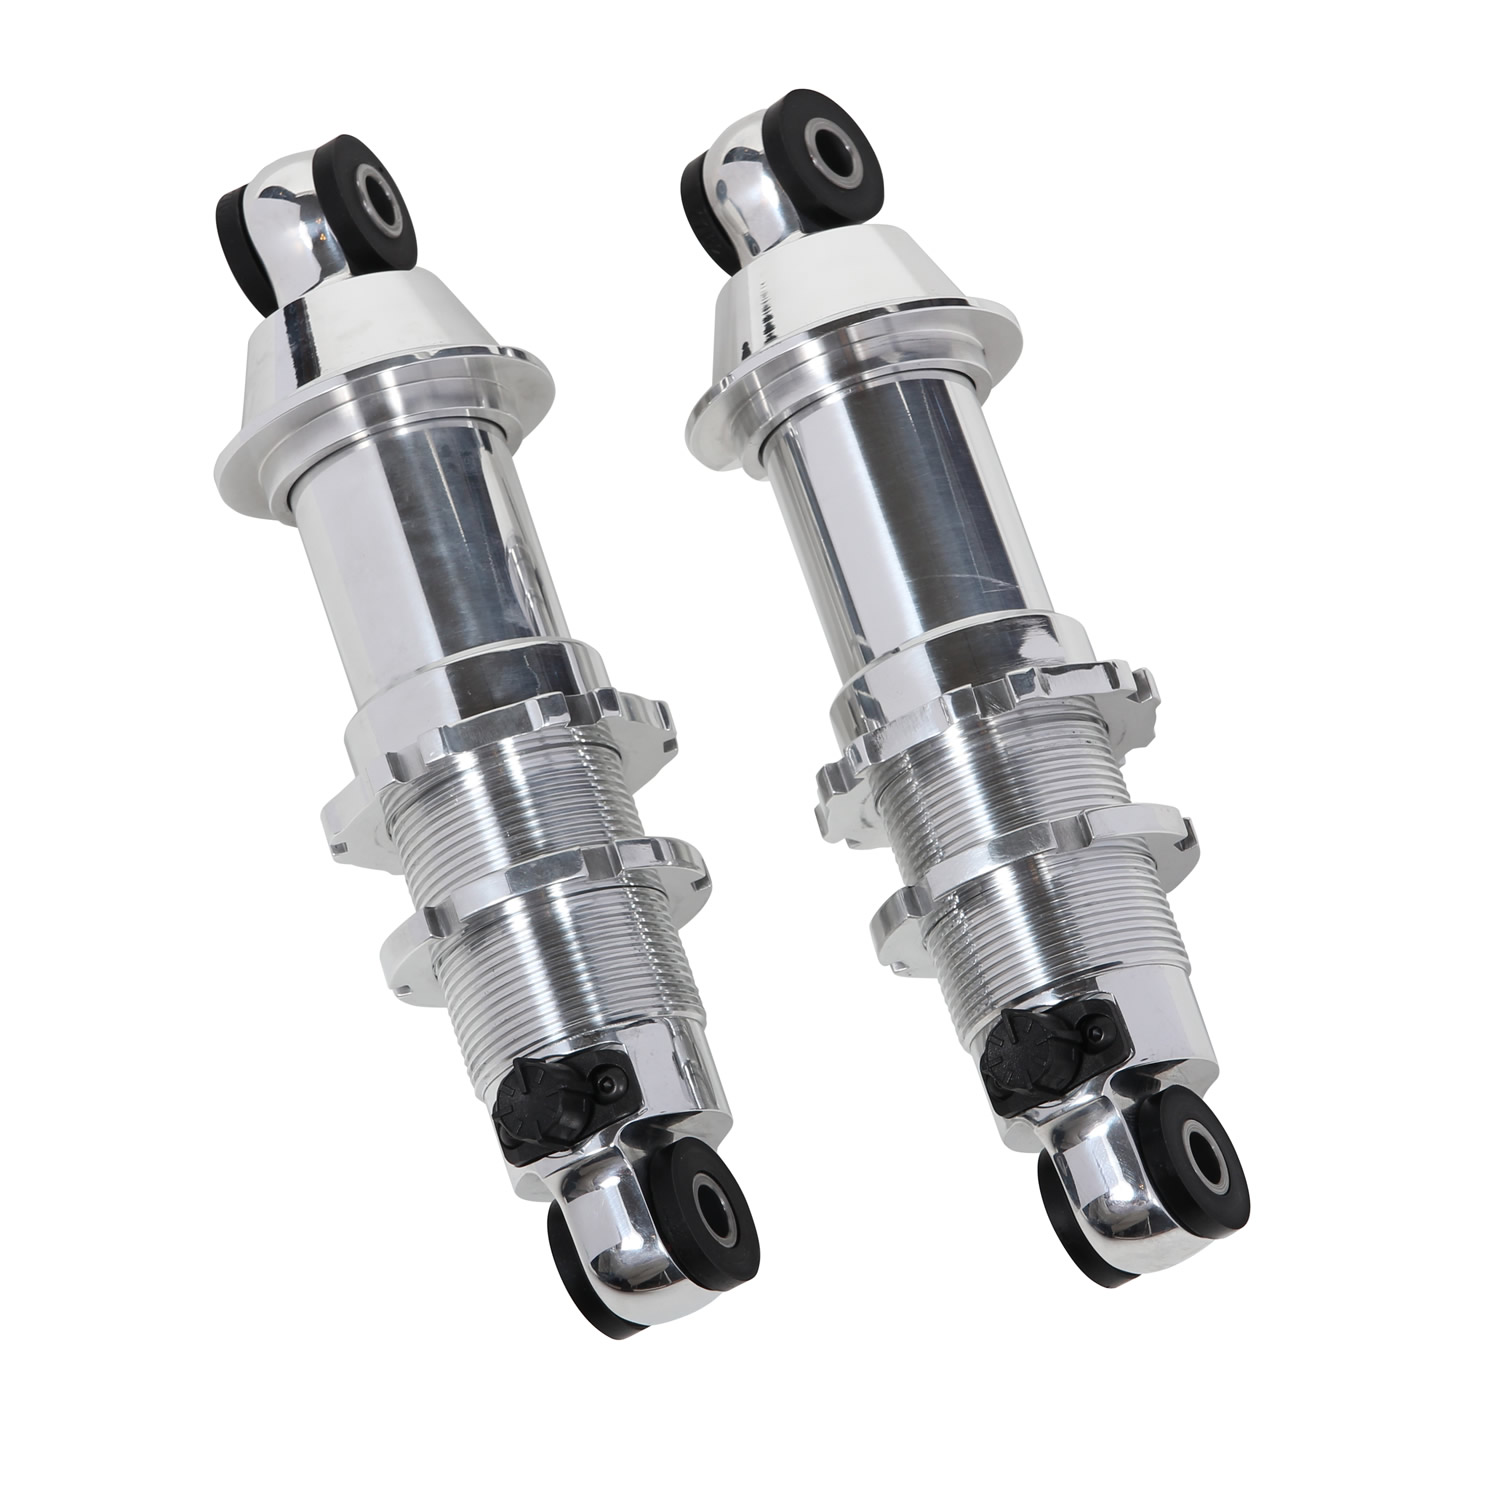 heidts-billet-front-coil-over-shocks-only-polished-cb-101-p